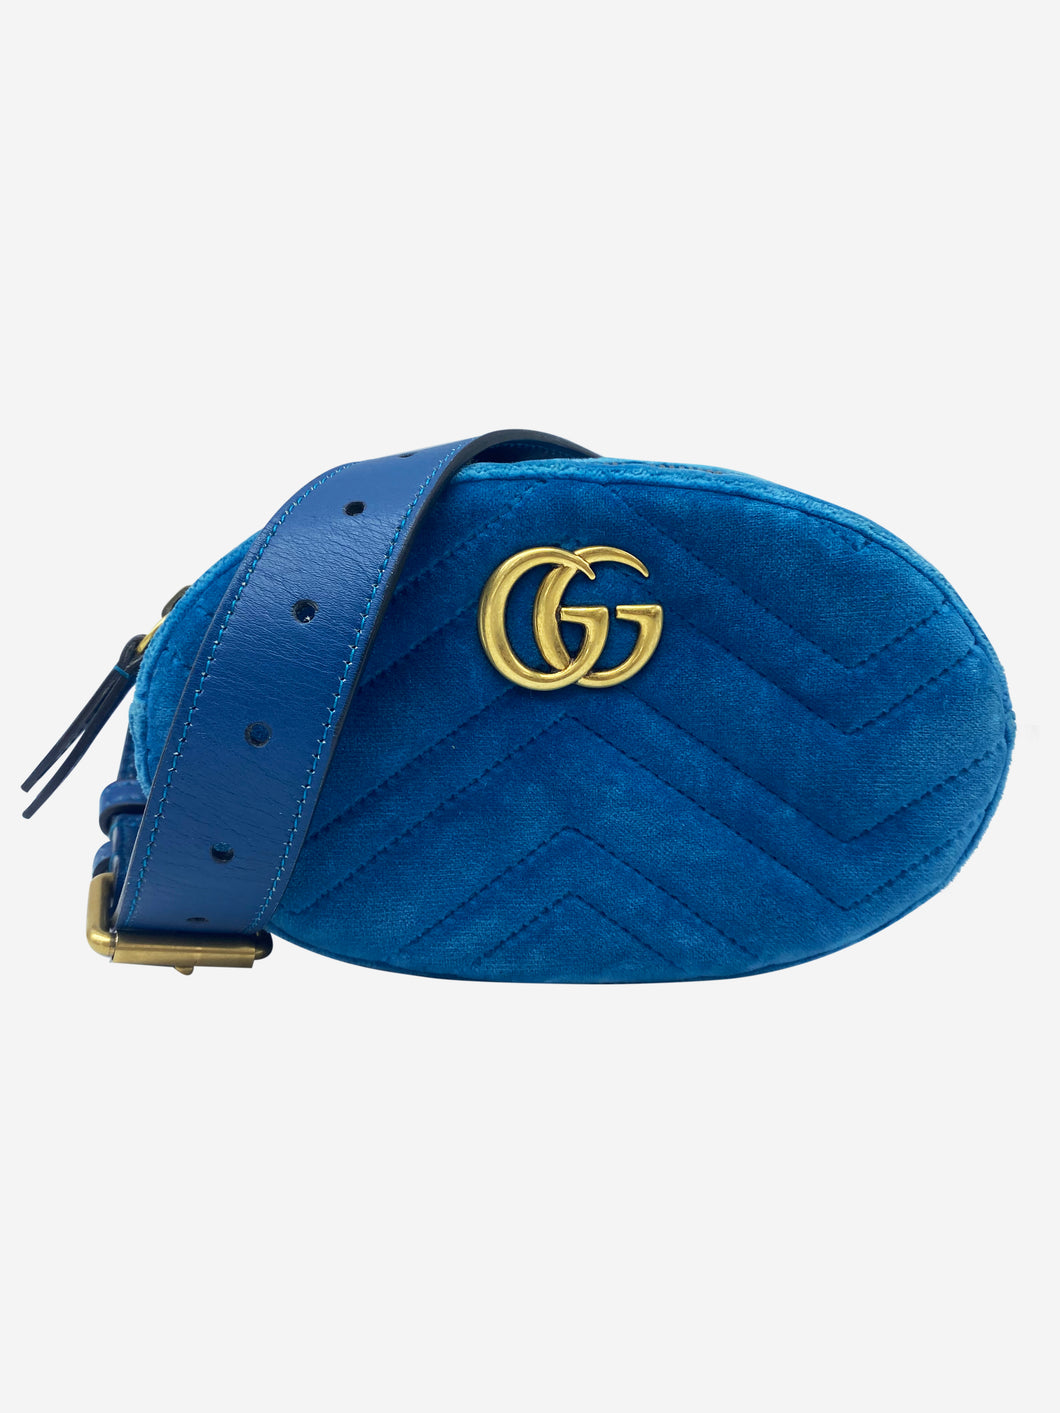 Teal blue velvet GG Marmont belt bag